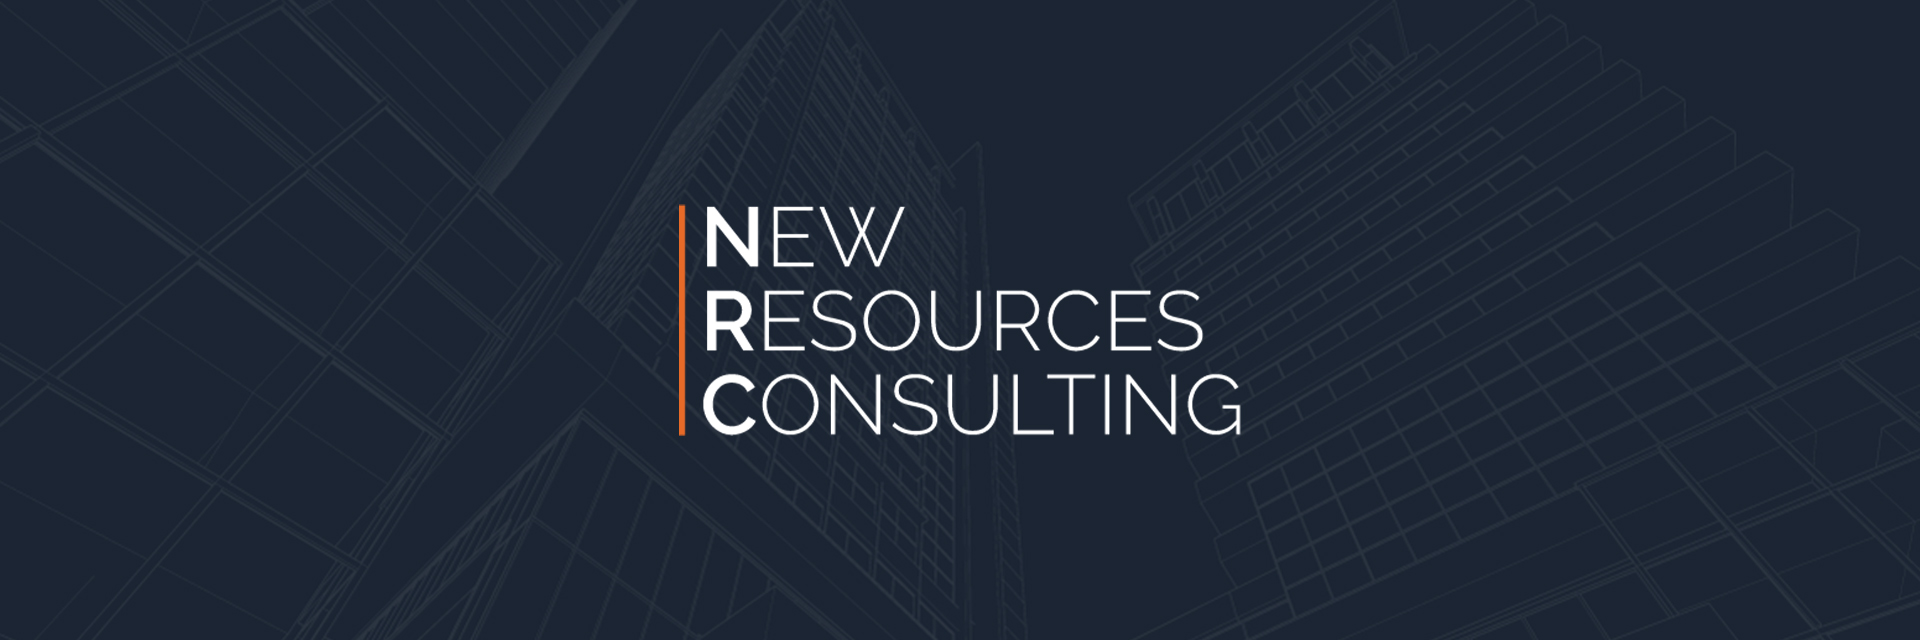 New Resources Consulting photo 1